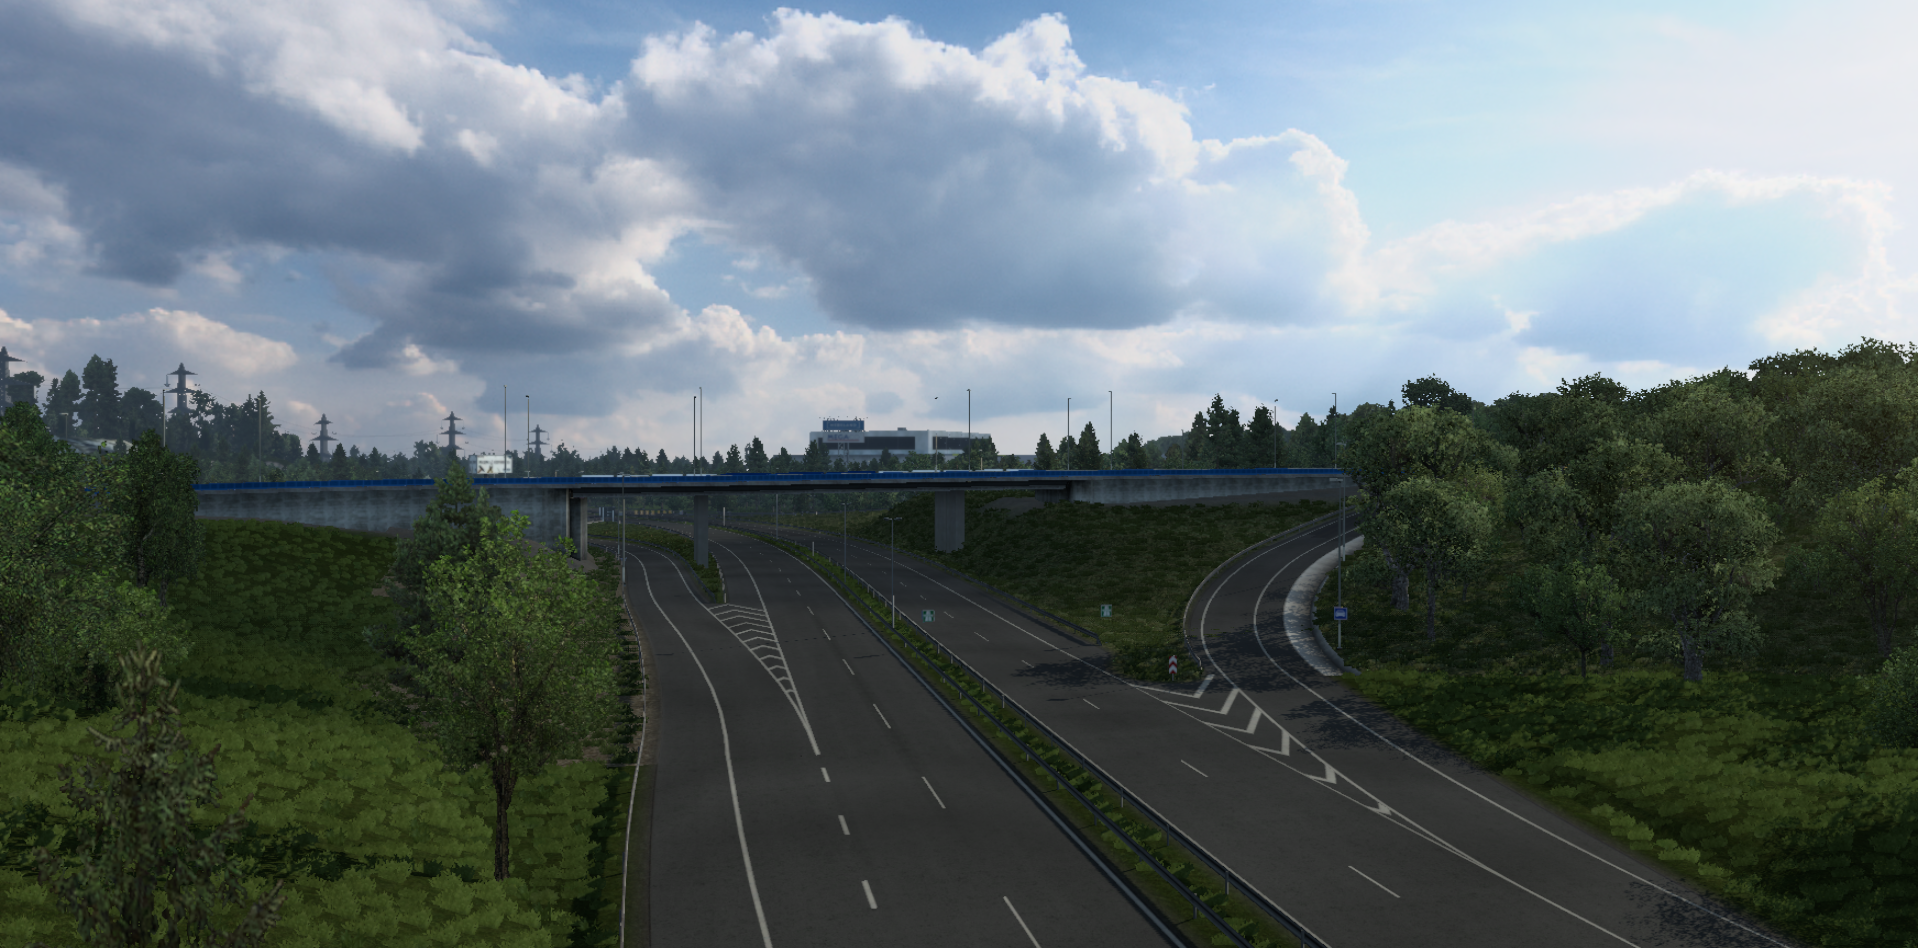 ets2_20210606_172245_00.png